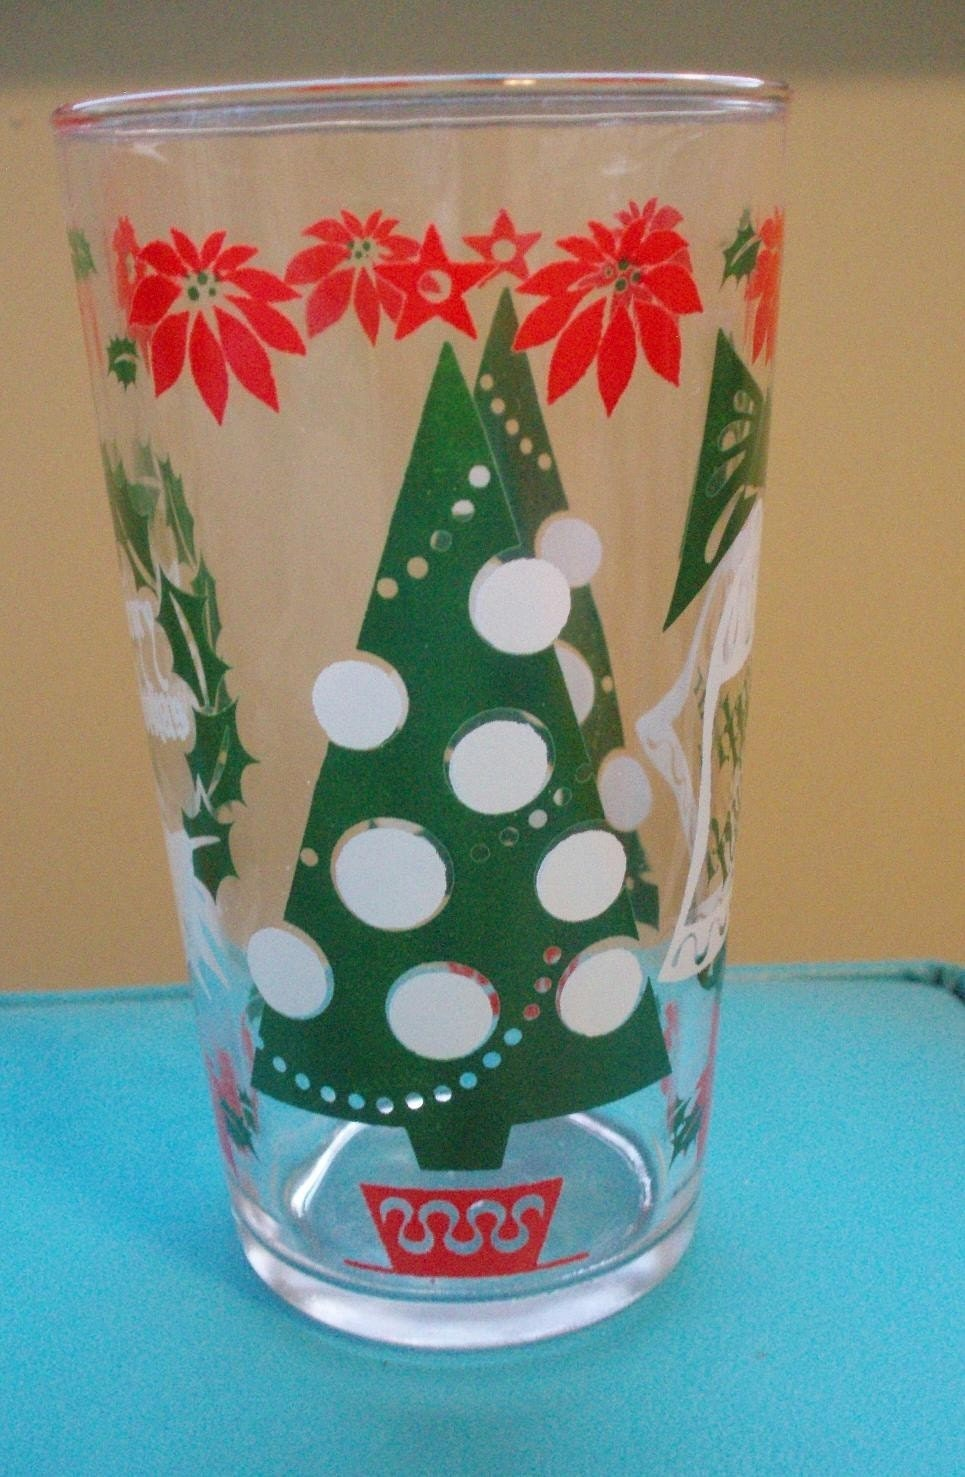 Mid century modern holiday glassware! This set of 4 is a must have for any vintage holiday table setting!